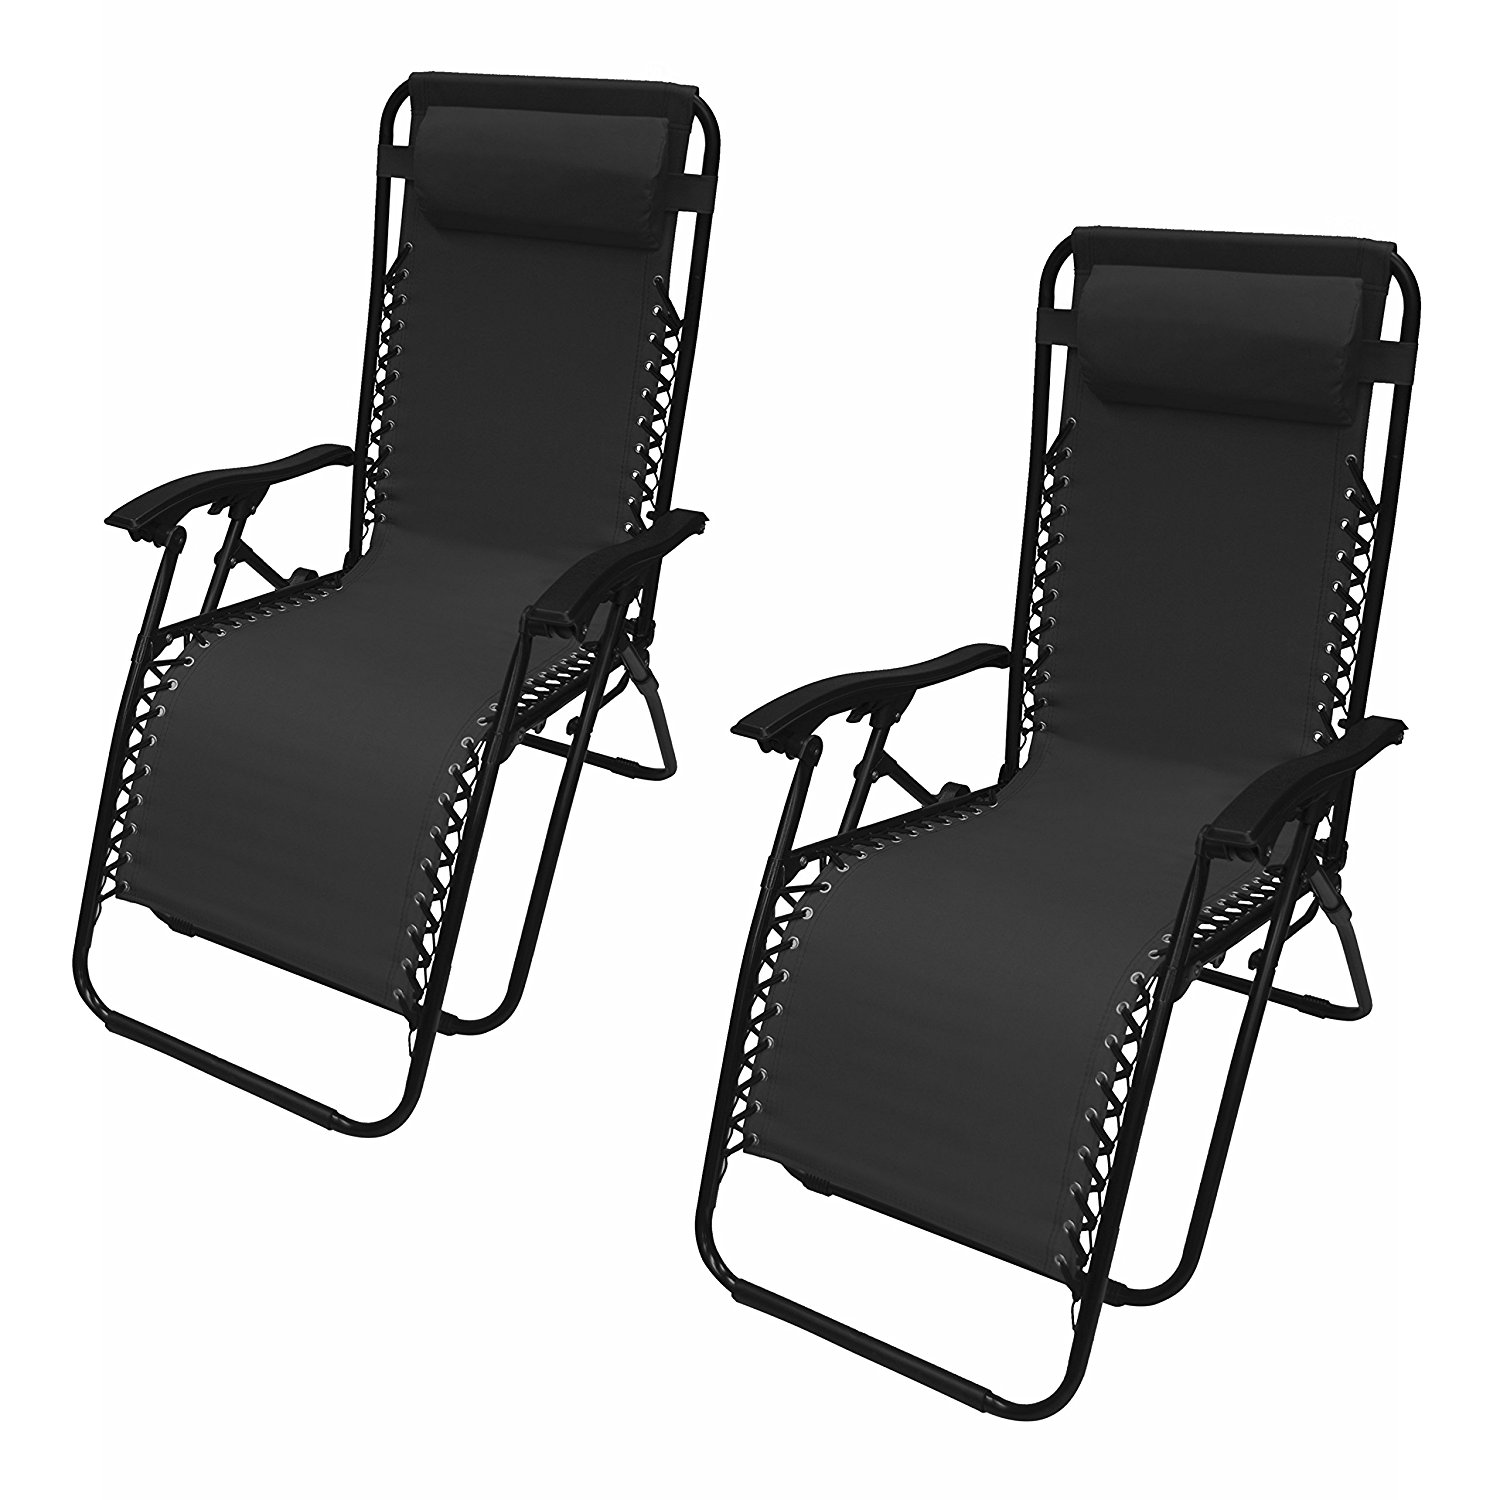 Outdoor Patio Foldable Chaise-Longue Leisure Chair, Black Color, Lot of 2